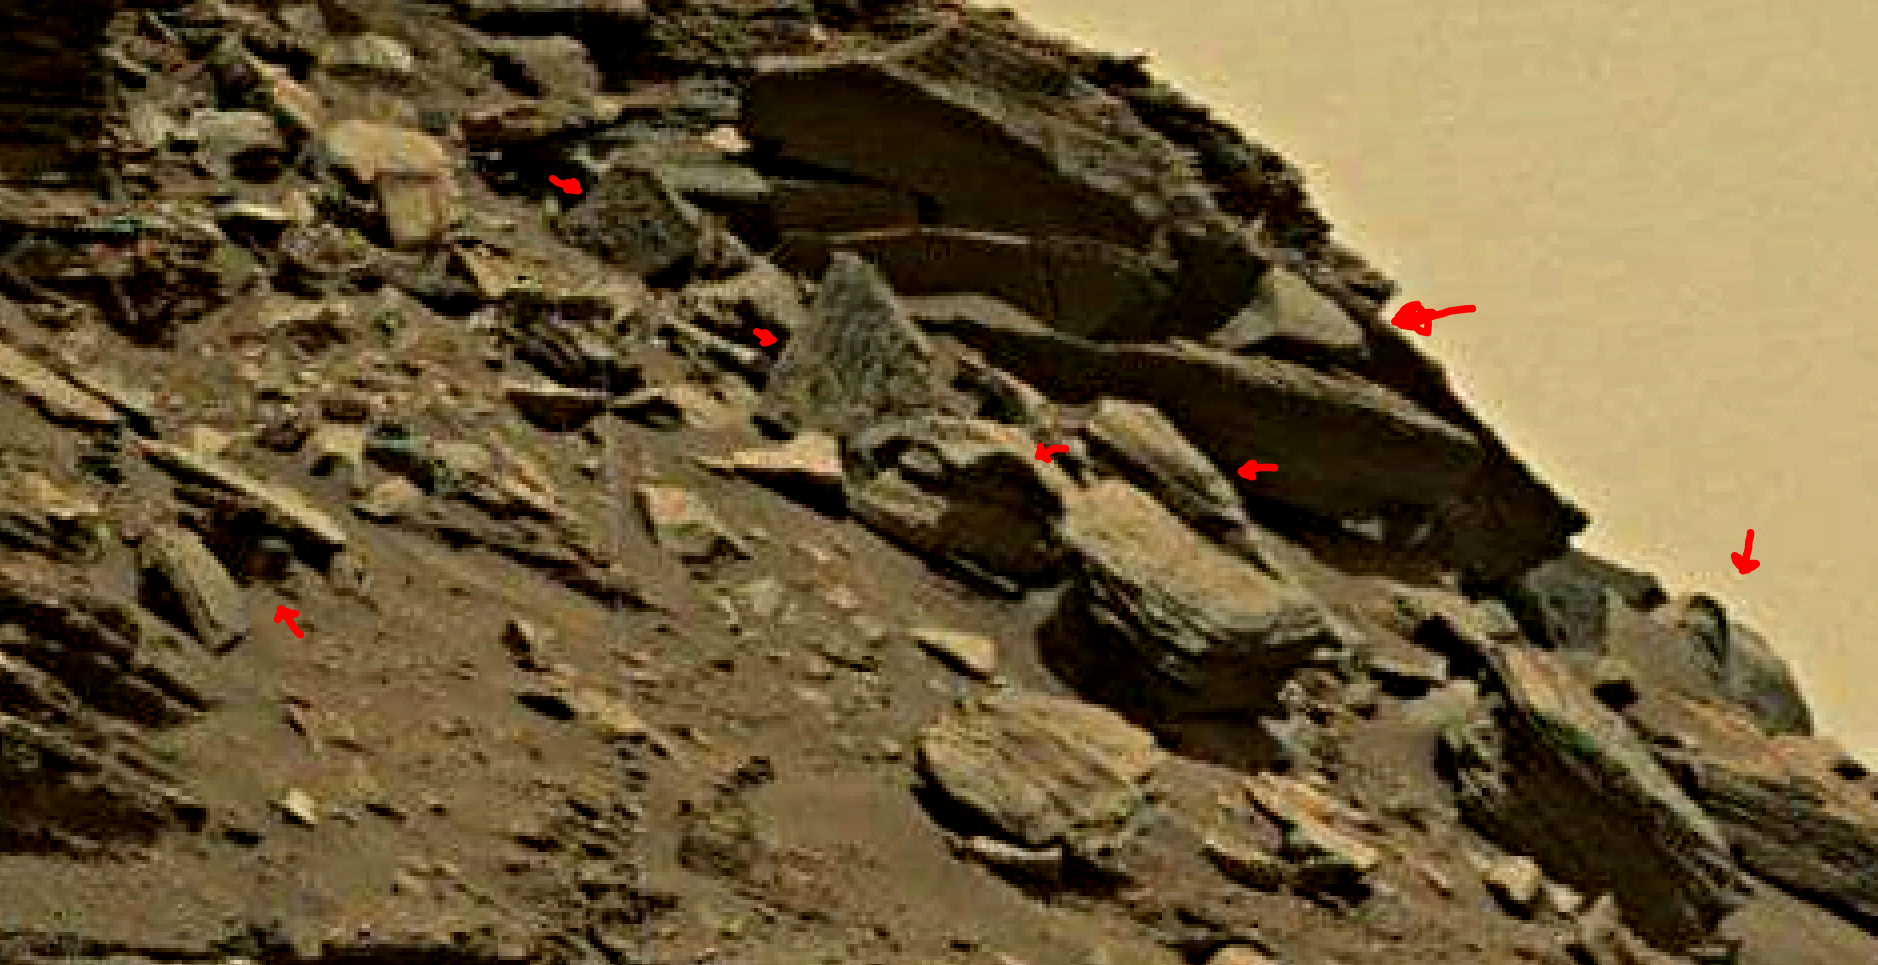 mars-sol-1455-anomaly-artifacts-7-was-life-on-mars